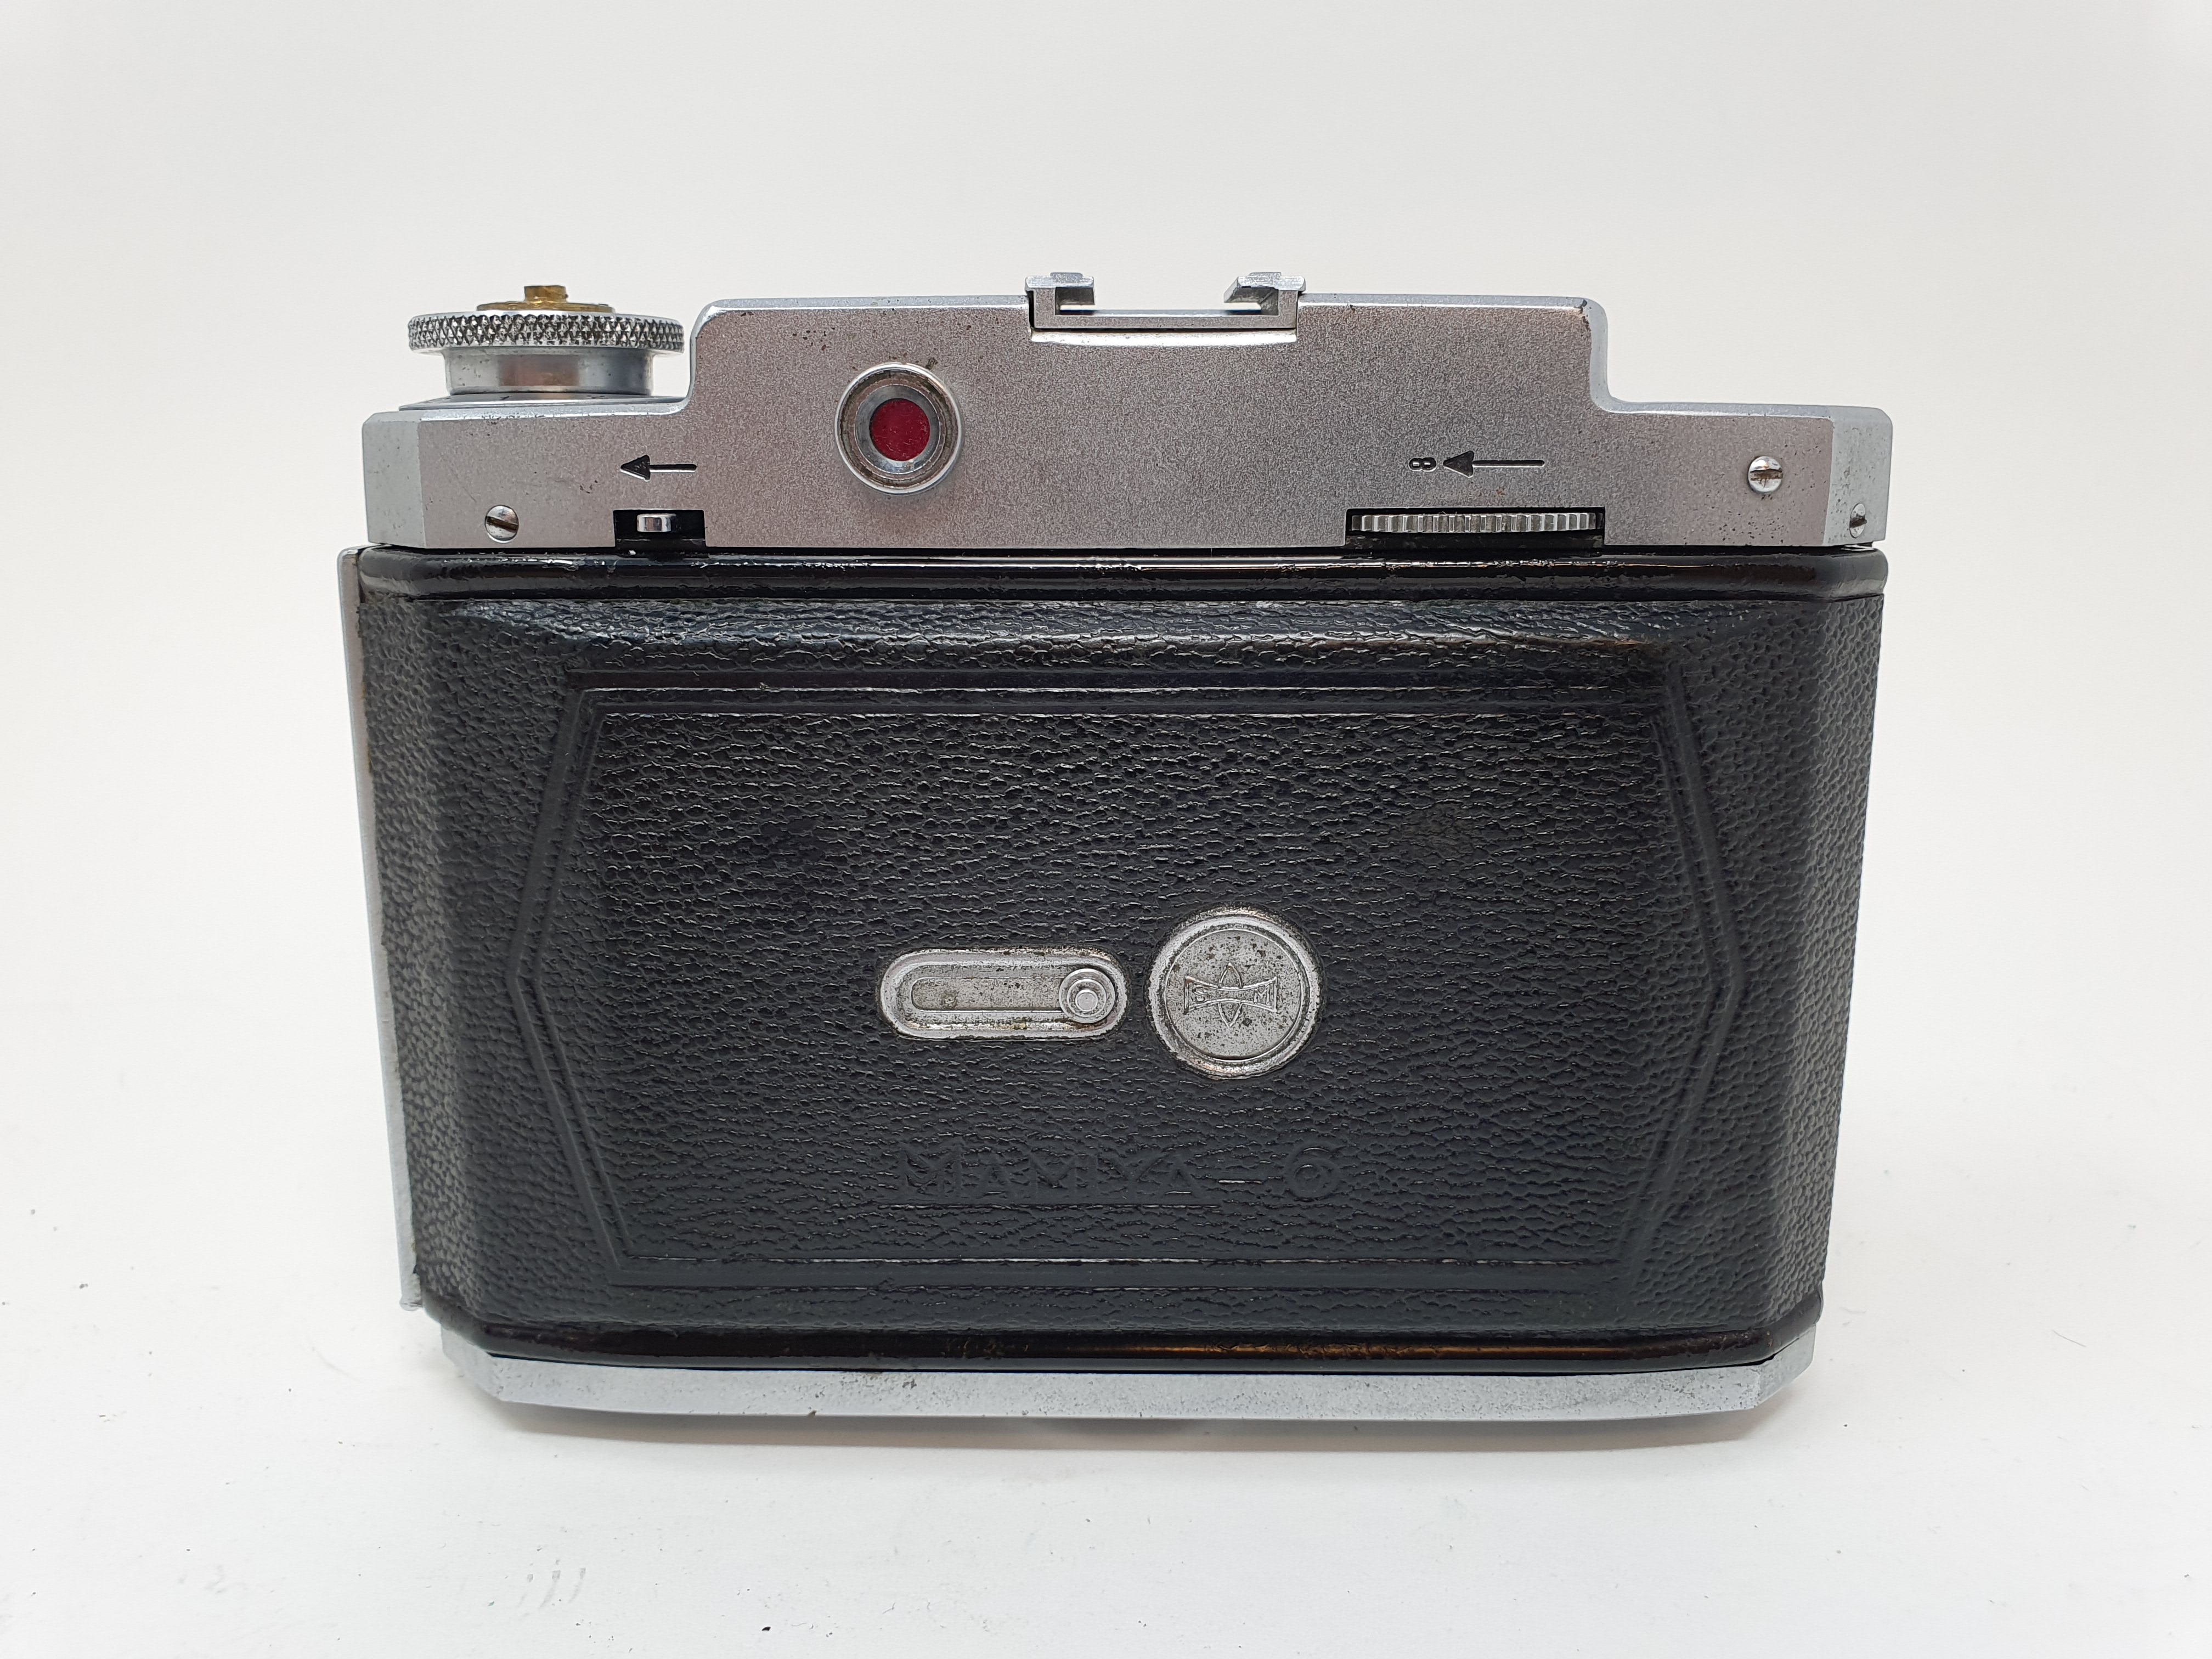 A Mamiya-6 folding camera Provenance: Part of a vast single owner collection of cameras, lenses - Image 4 of 4